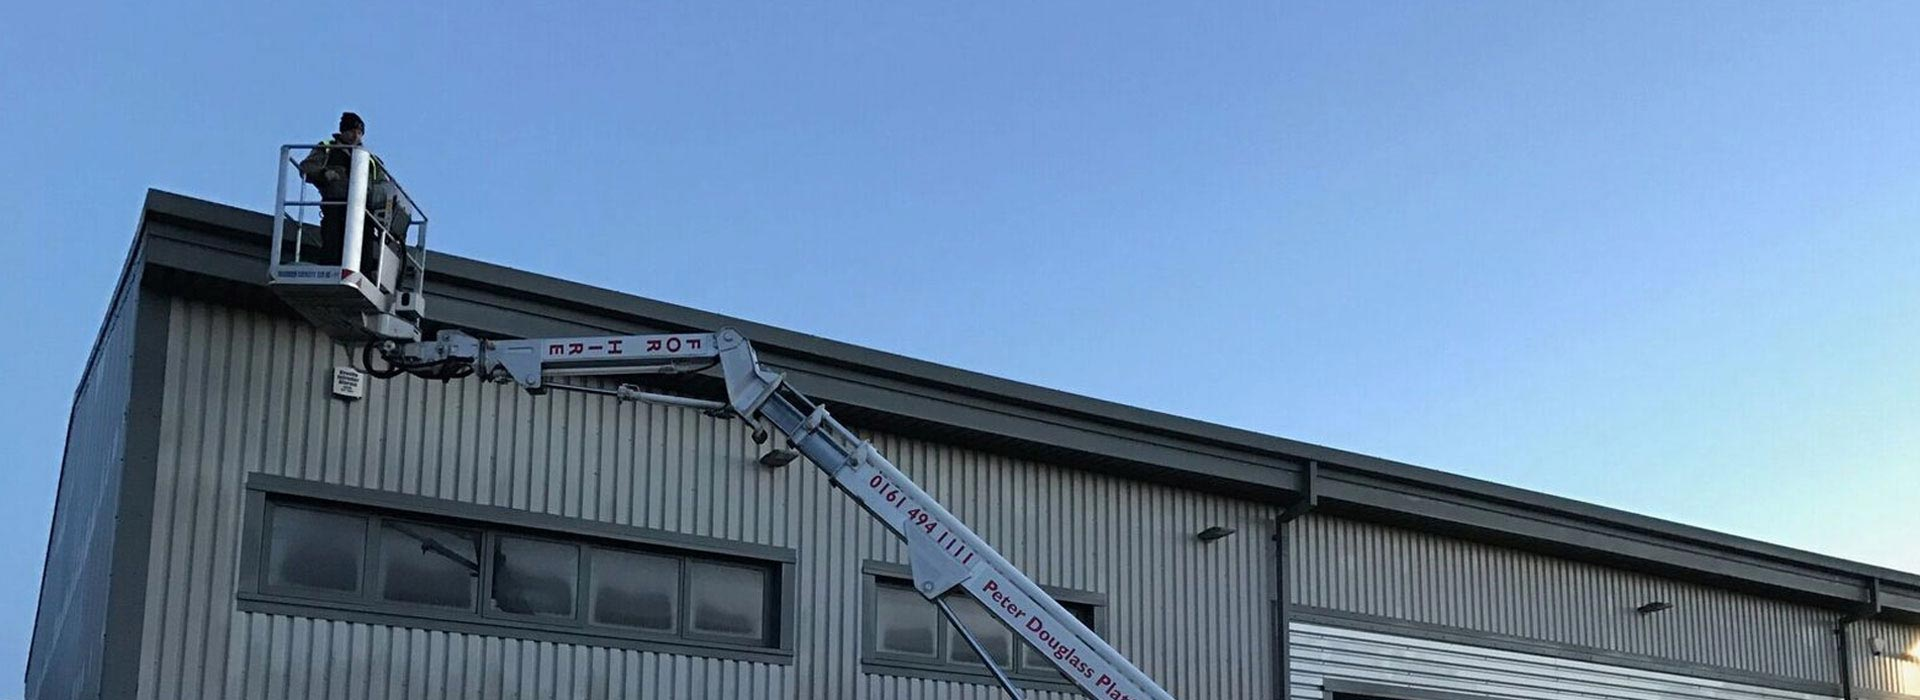 Ladderless Gutter Cleaning Services in Manchester and the North West - HCS Cleaning Services